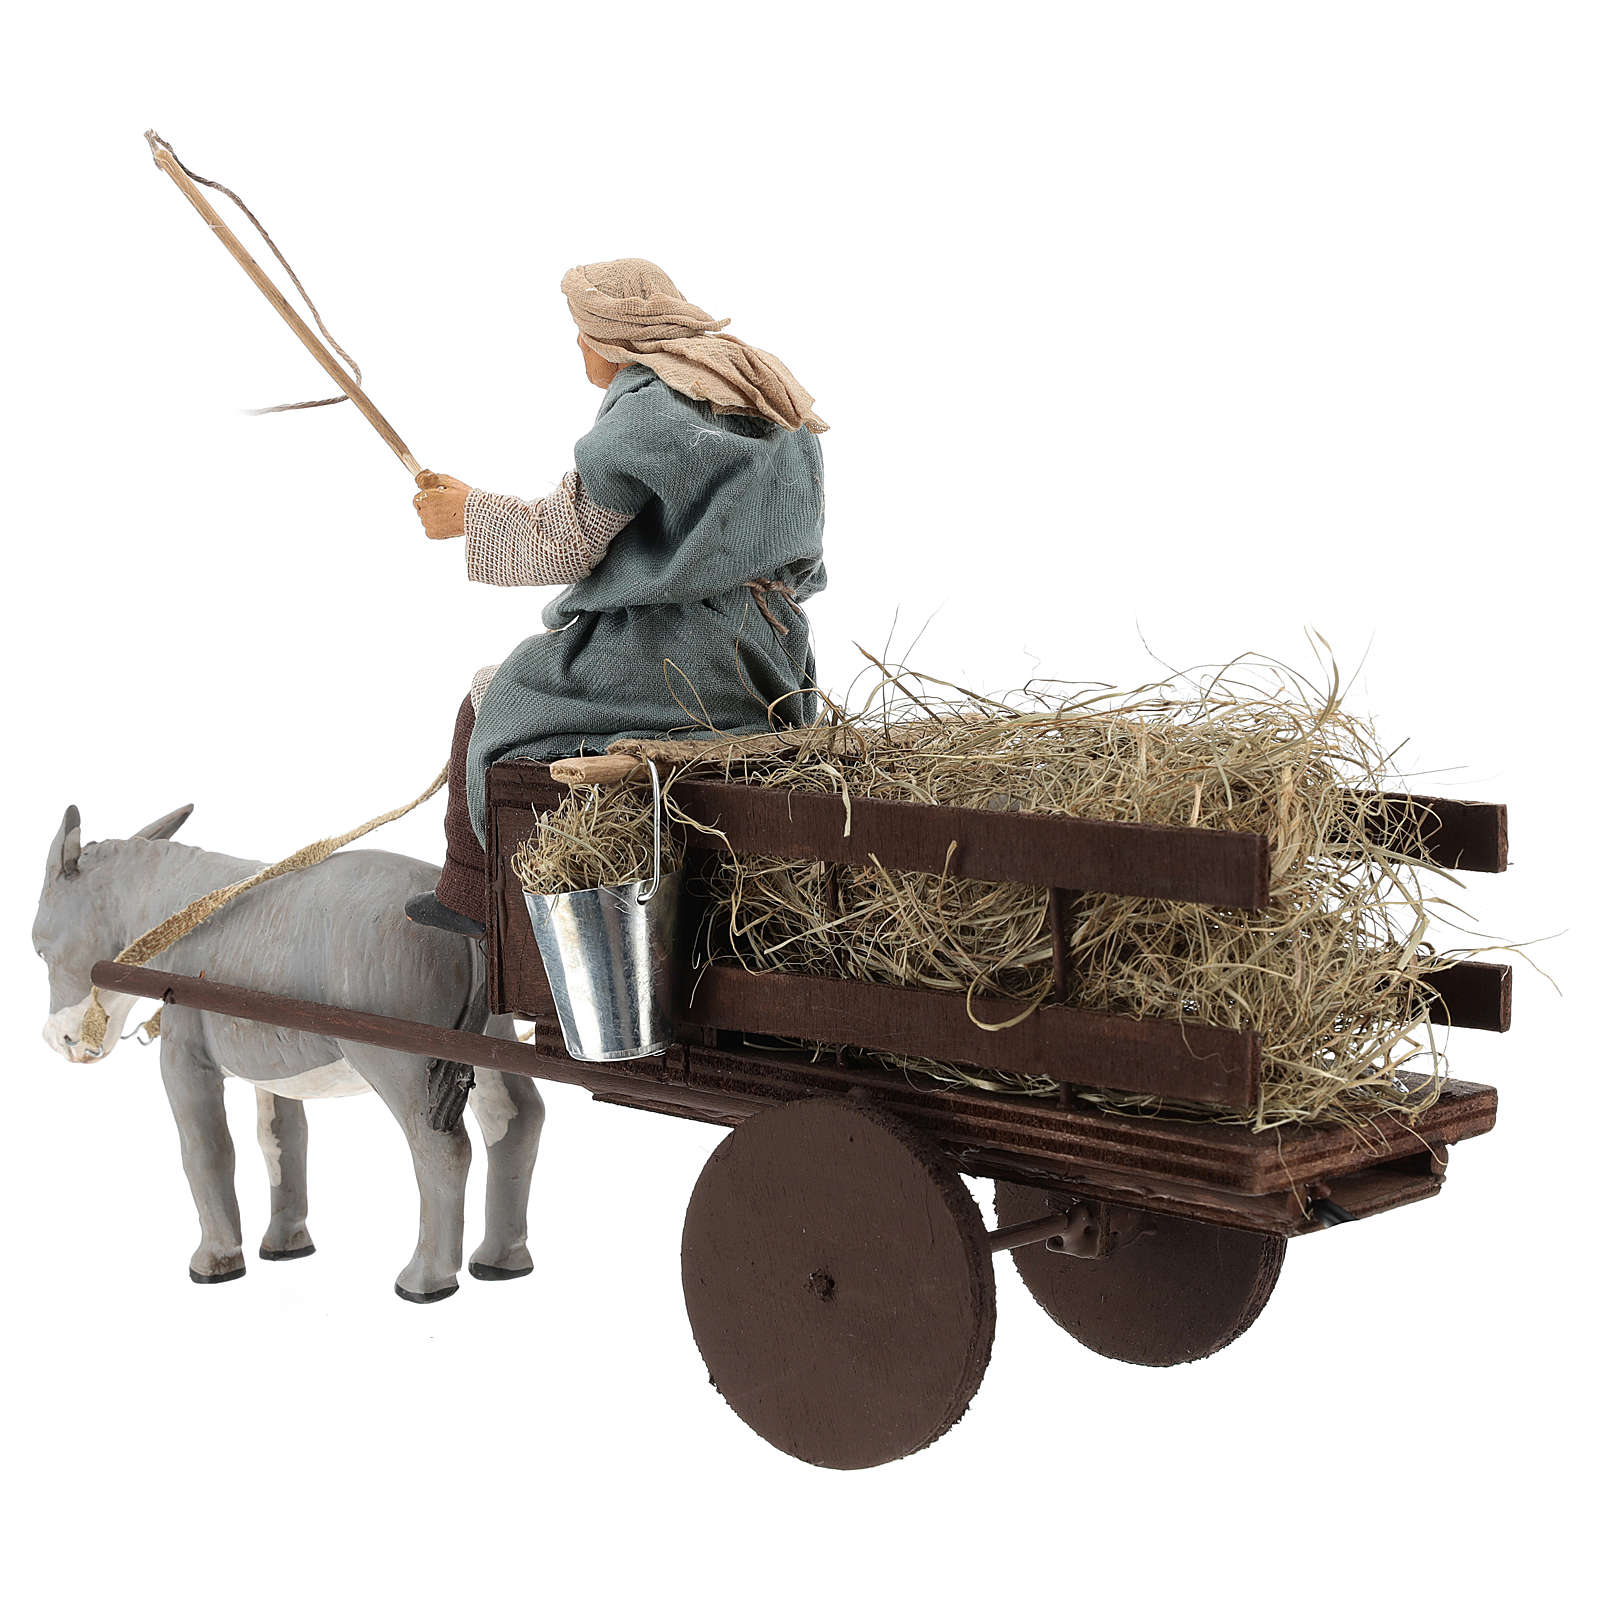 Animated nativity scene figurine man on cart in clay 14 cm 4